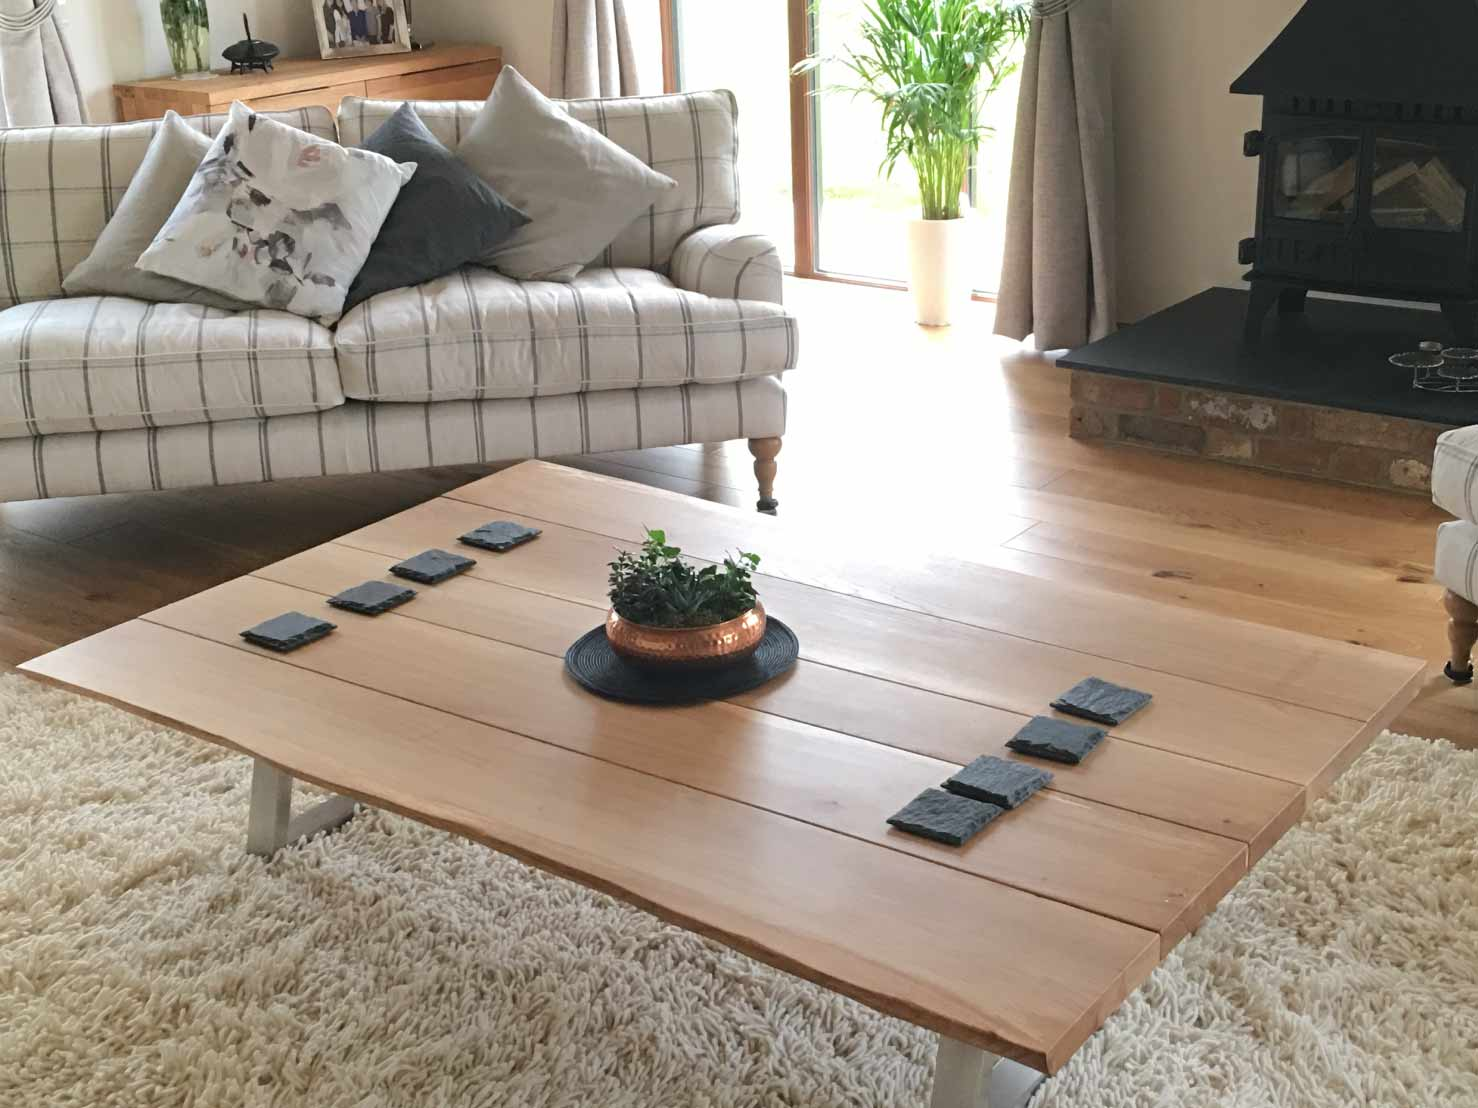 industrial-style-coffee-table-from-abacus-tables-piranha-natural-oak-live-edge-project-372